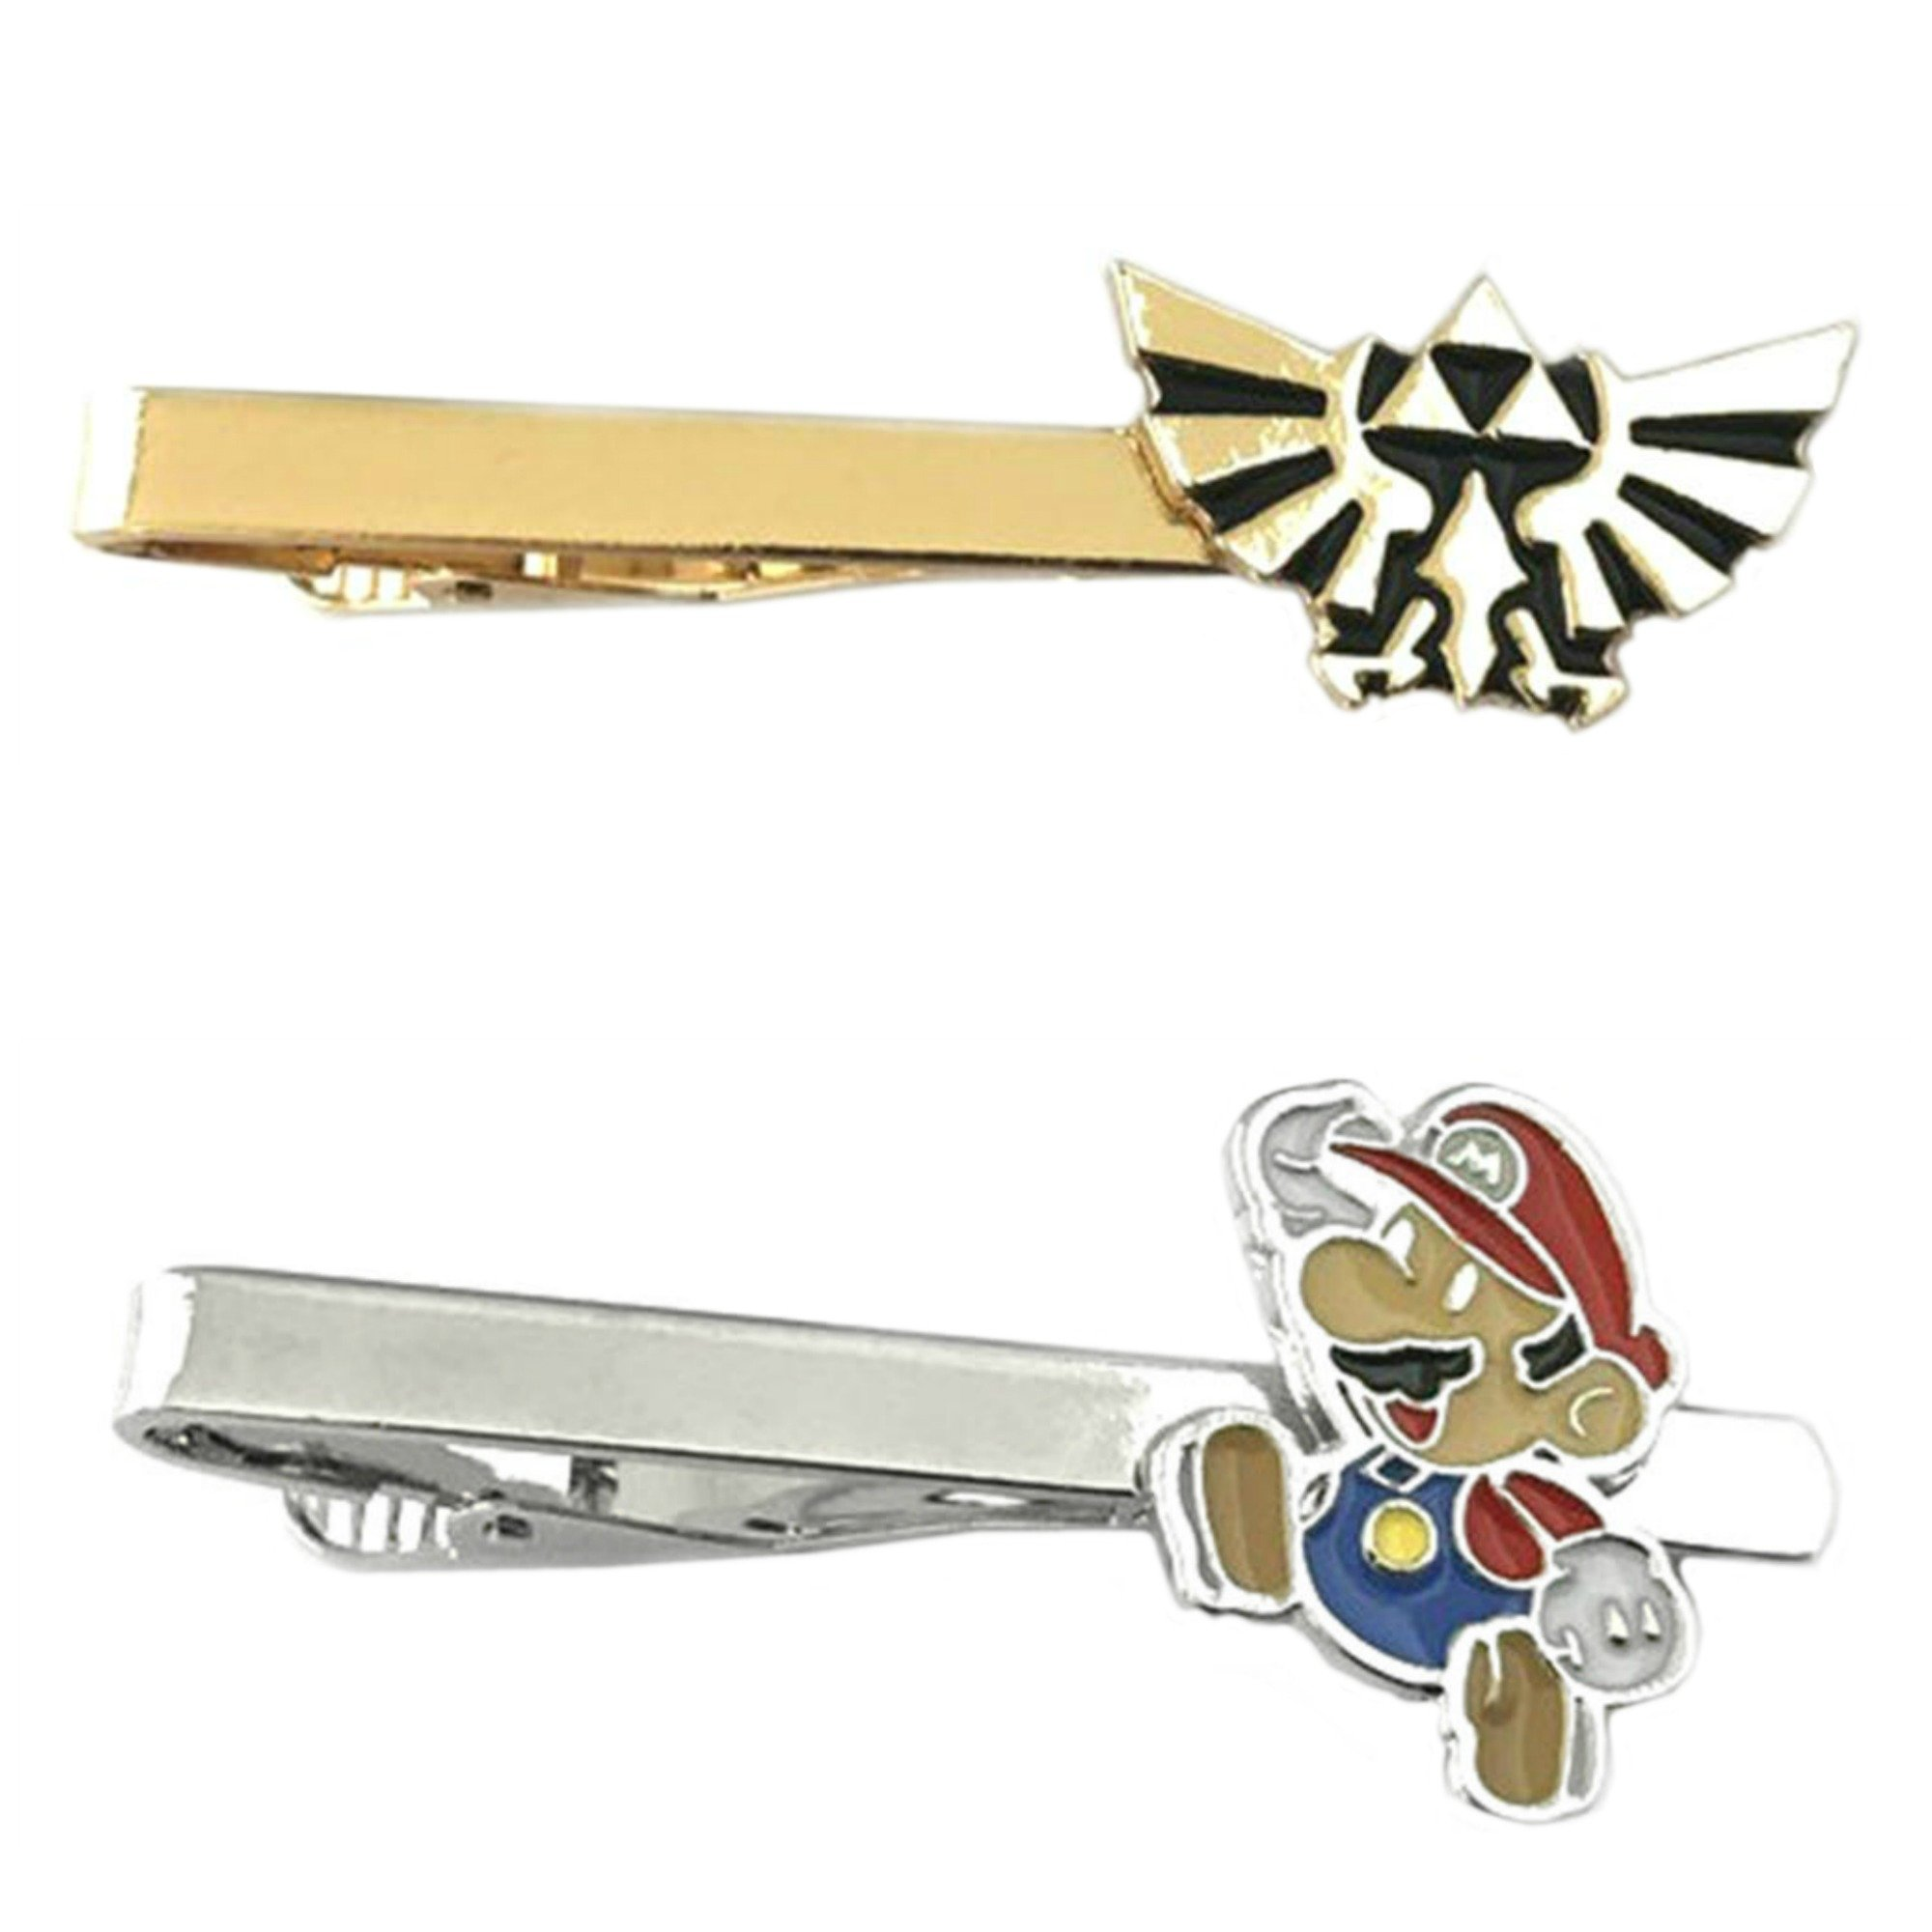 Outlander Video Games - Legend of Zelda Hyrule & Mario's Face - Tiebar Tie Clasp Set of 2 Wedding Superhero Logo w/Gift Box